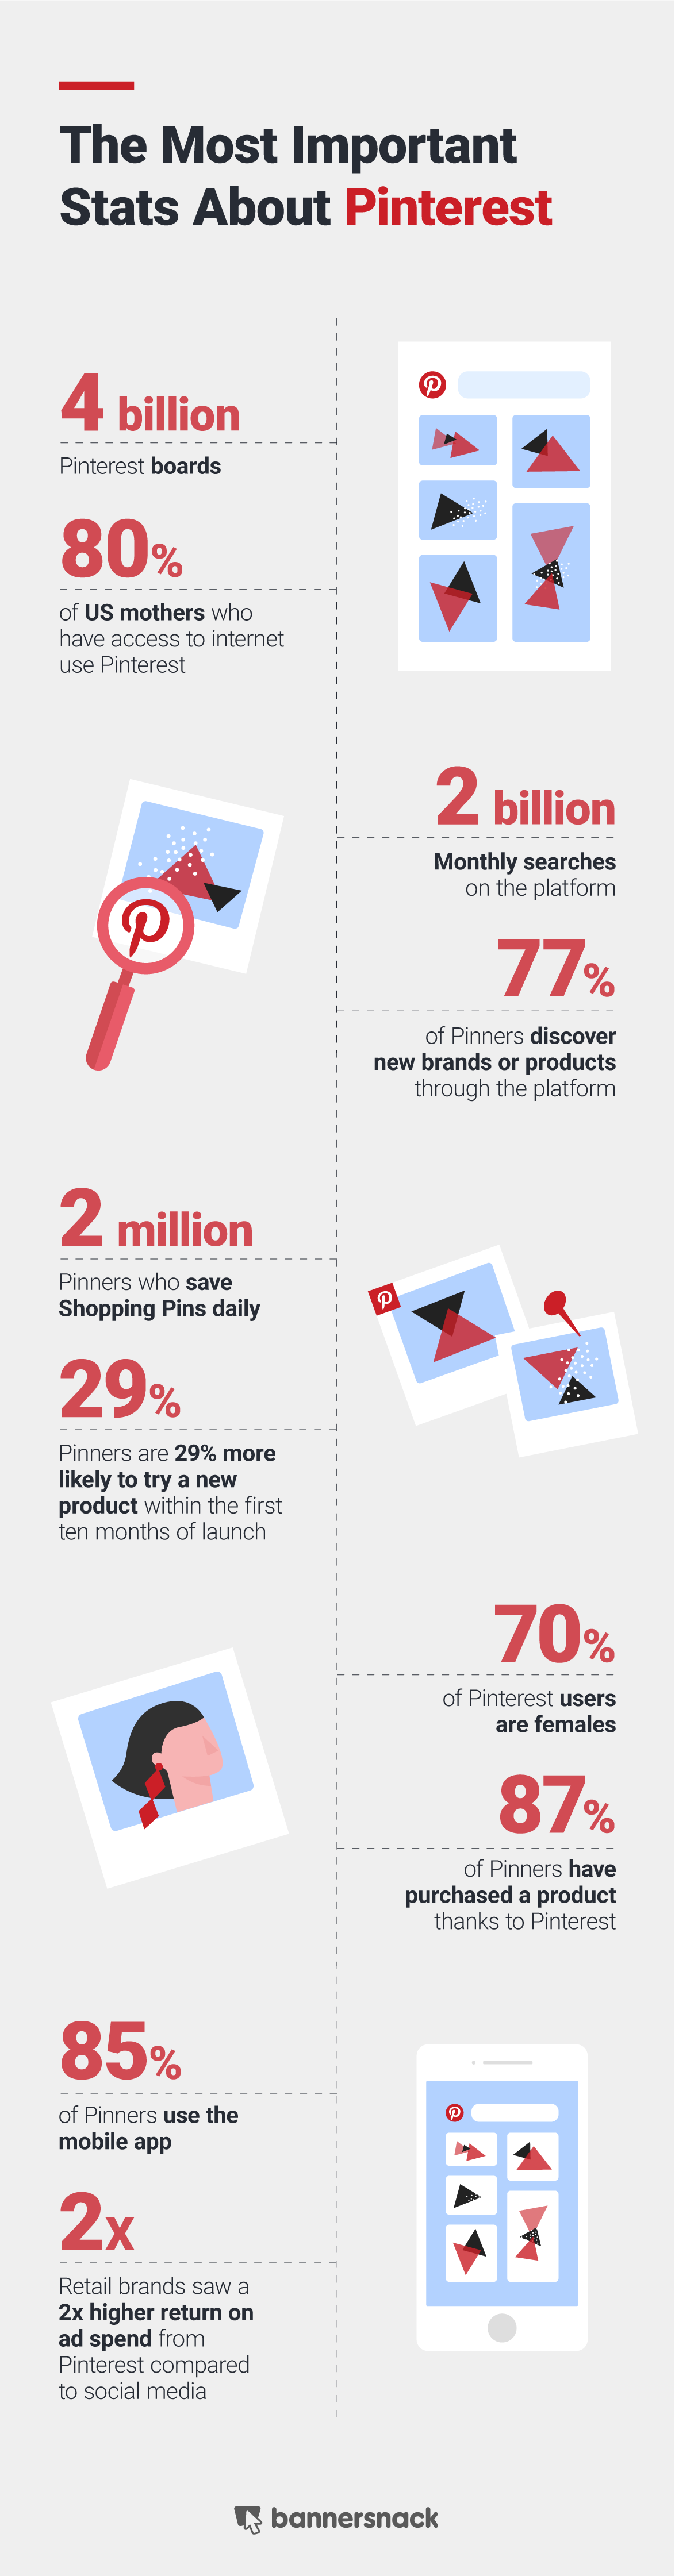 pinterest marketing statistics